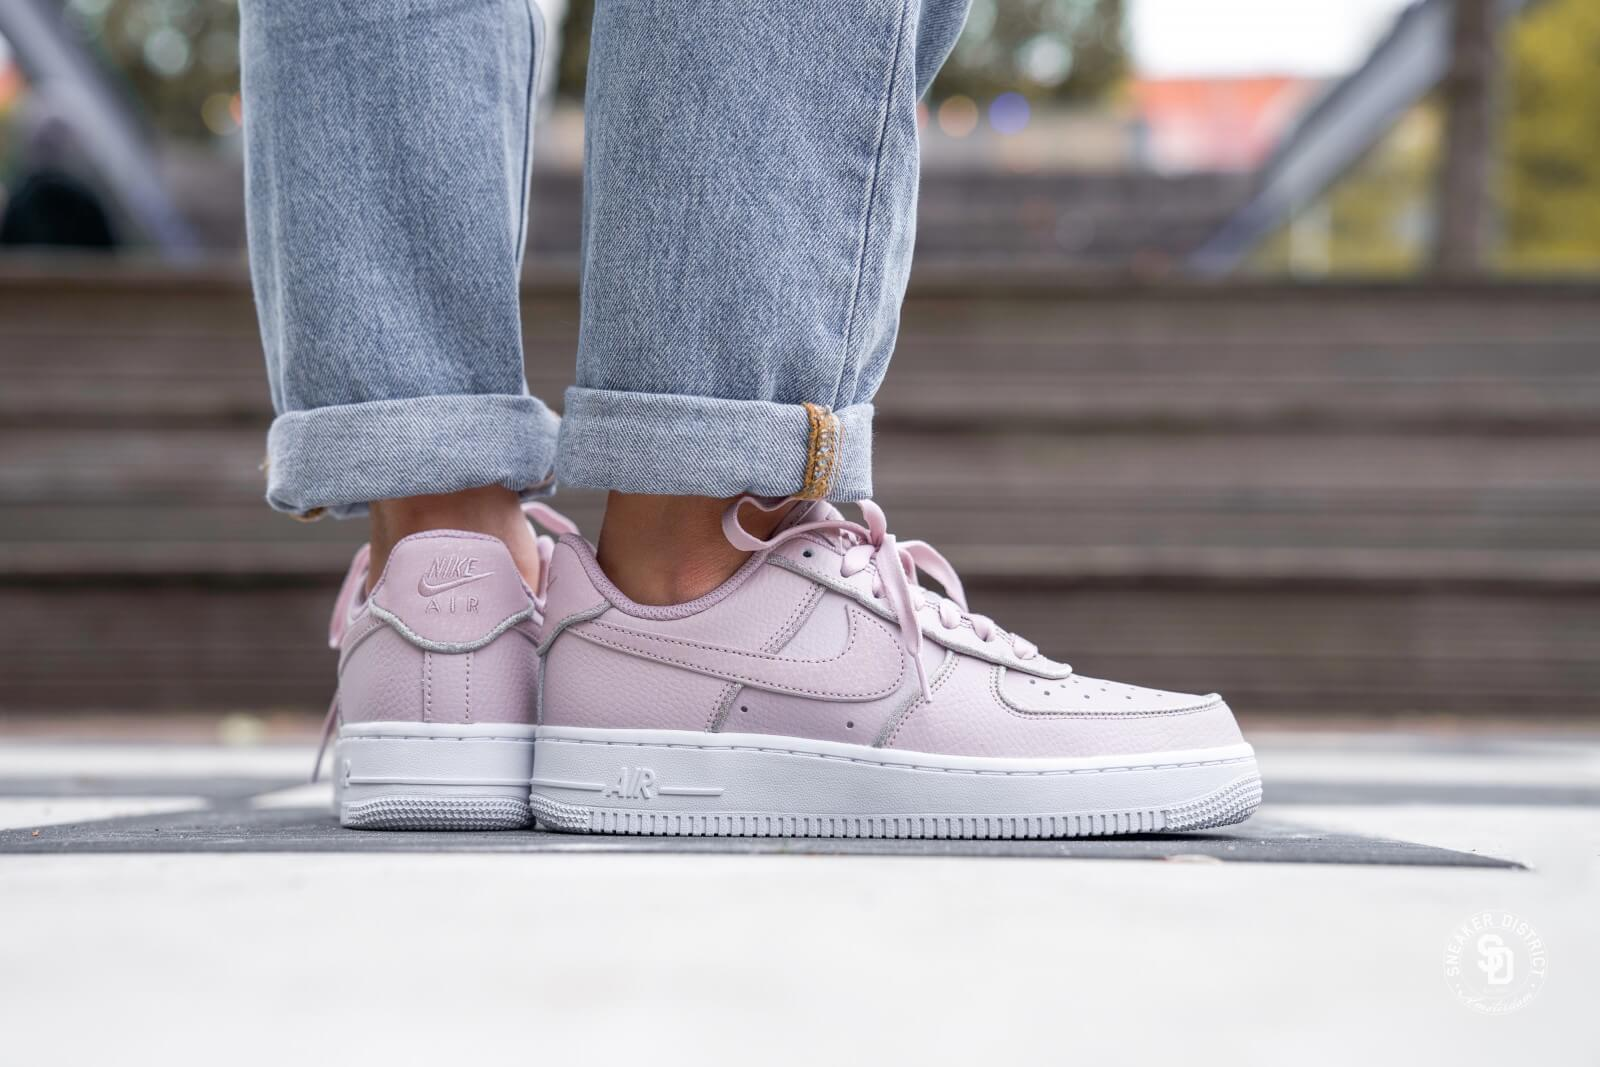 Nike Air Force 1 Low WhitePink Rose Green For Sale